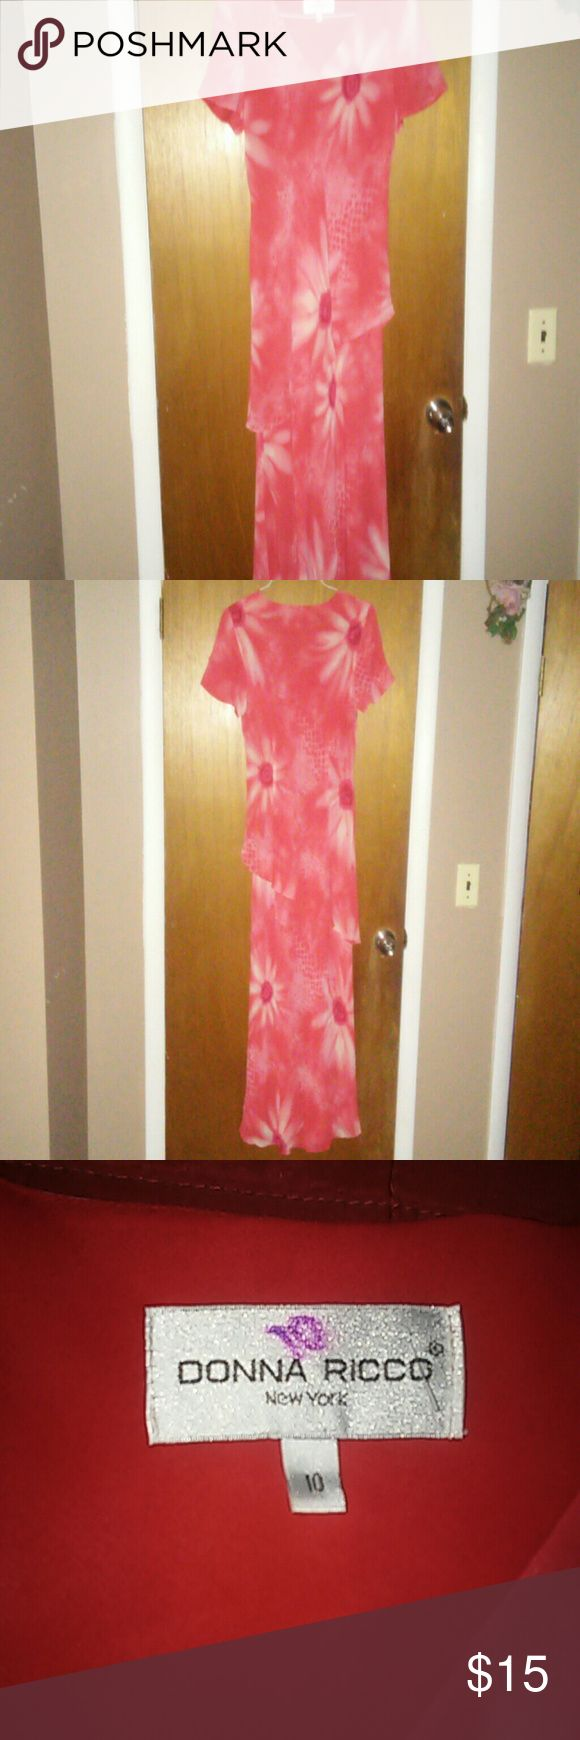 """Donna Ricco Asymetrical summer dress Size 10 Donna Ricco asymmetrical maxi (orange/red) floral dress.    Short sleeve.  Excellent condition, except for the """"10"""" written in marker on the tag. Donna Ricco Dresses Maxi"""